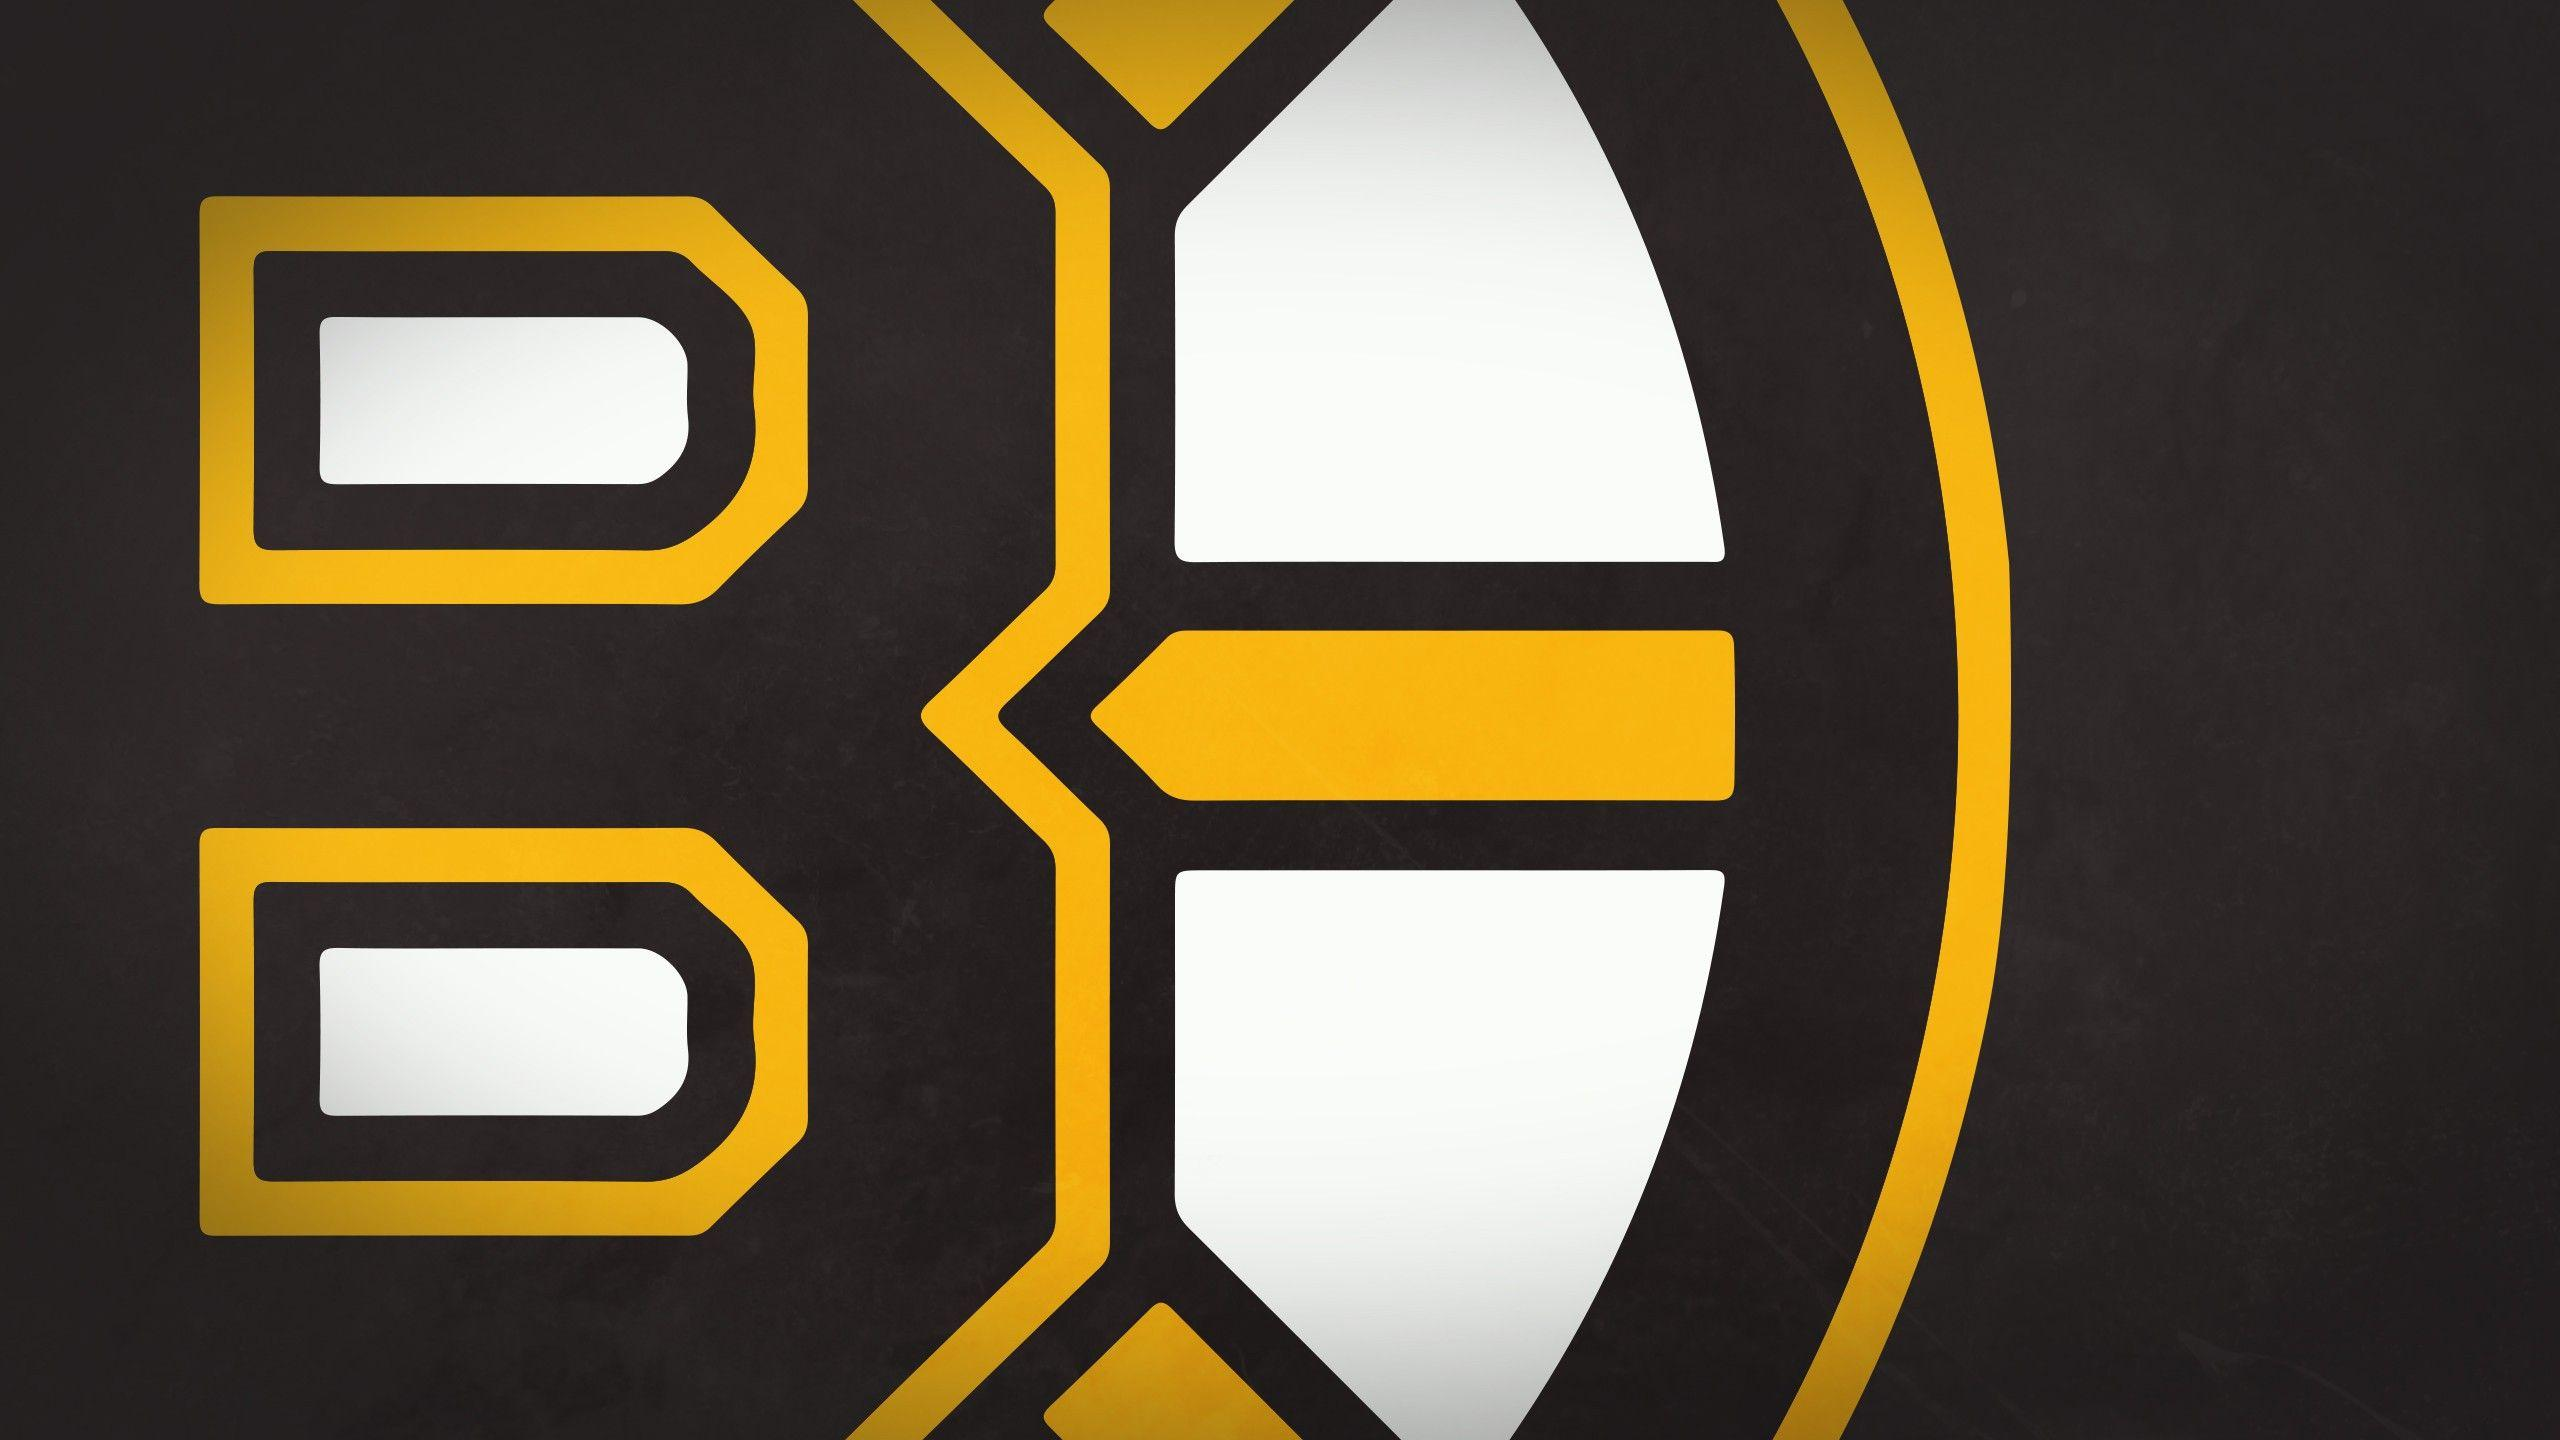 10 Boston Bruins Wallpapers | Boston Bruins Backgrounds